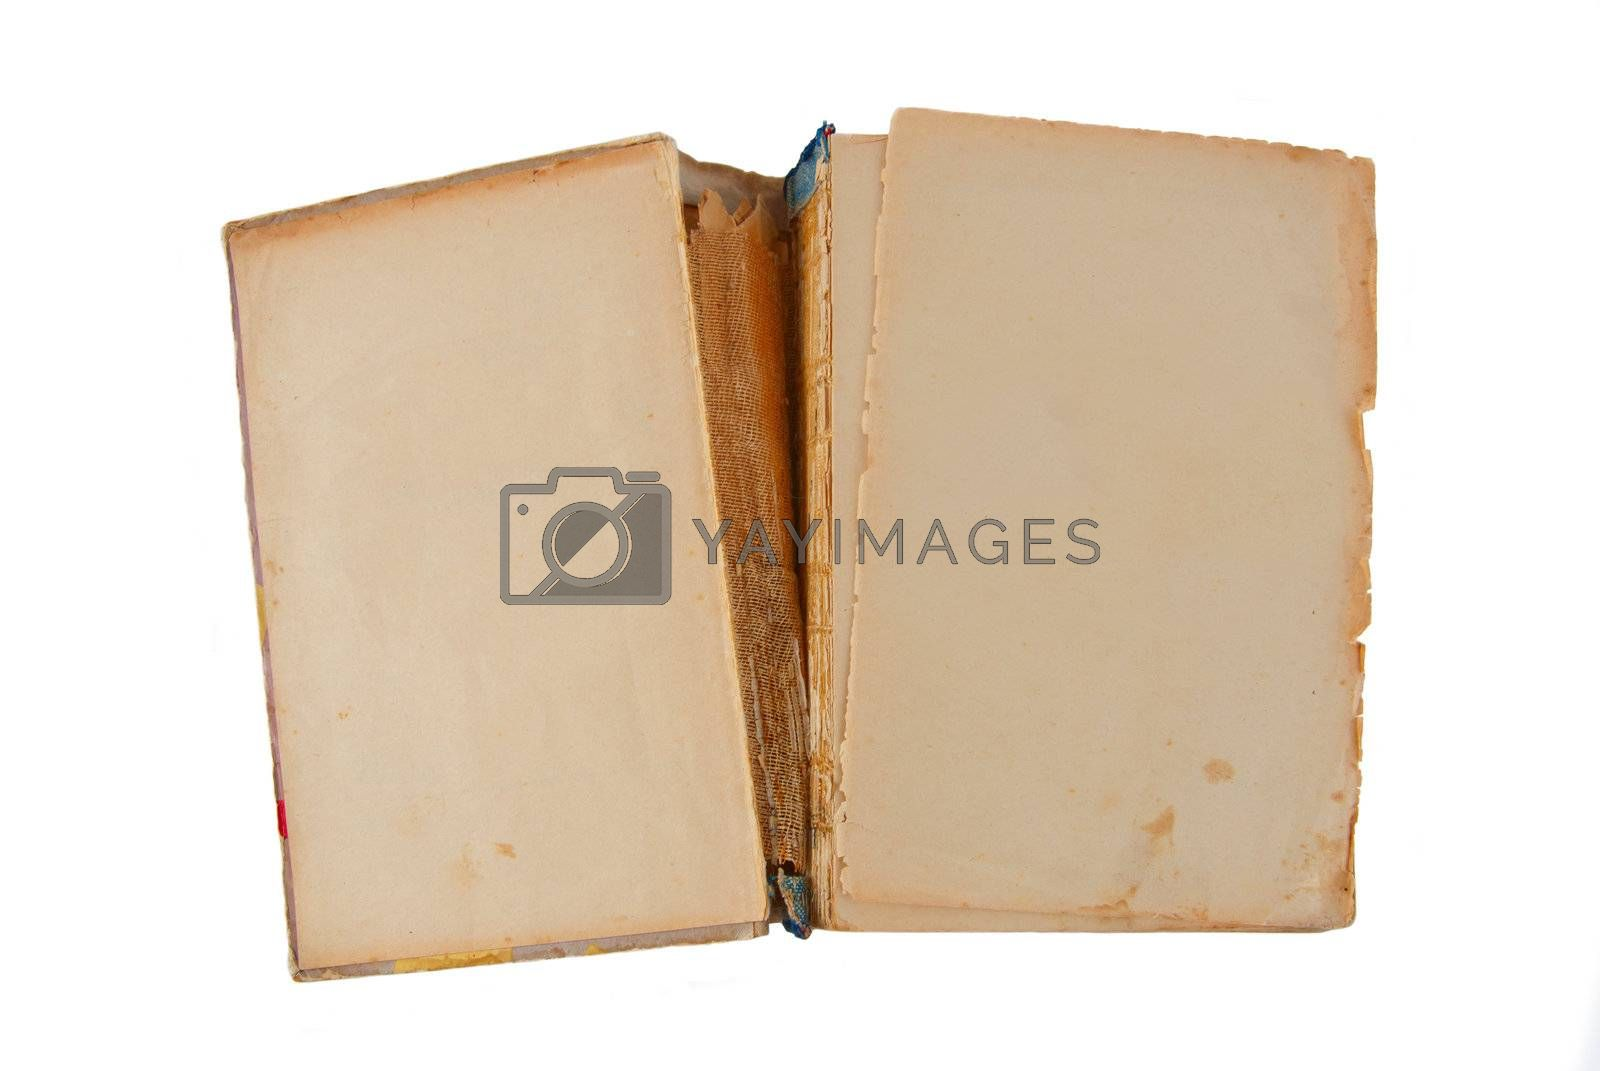 The open old book isolated on white background